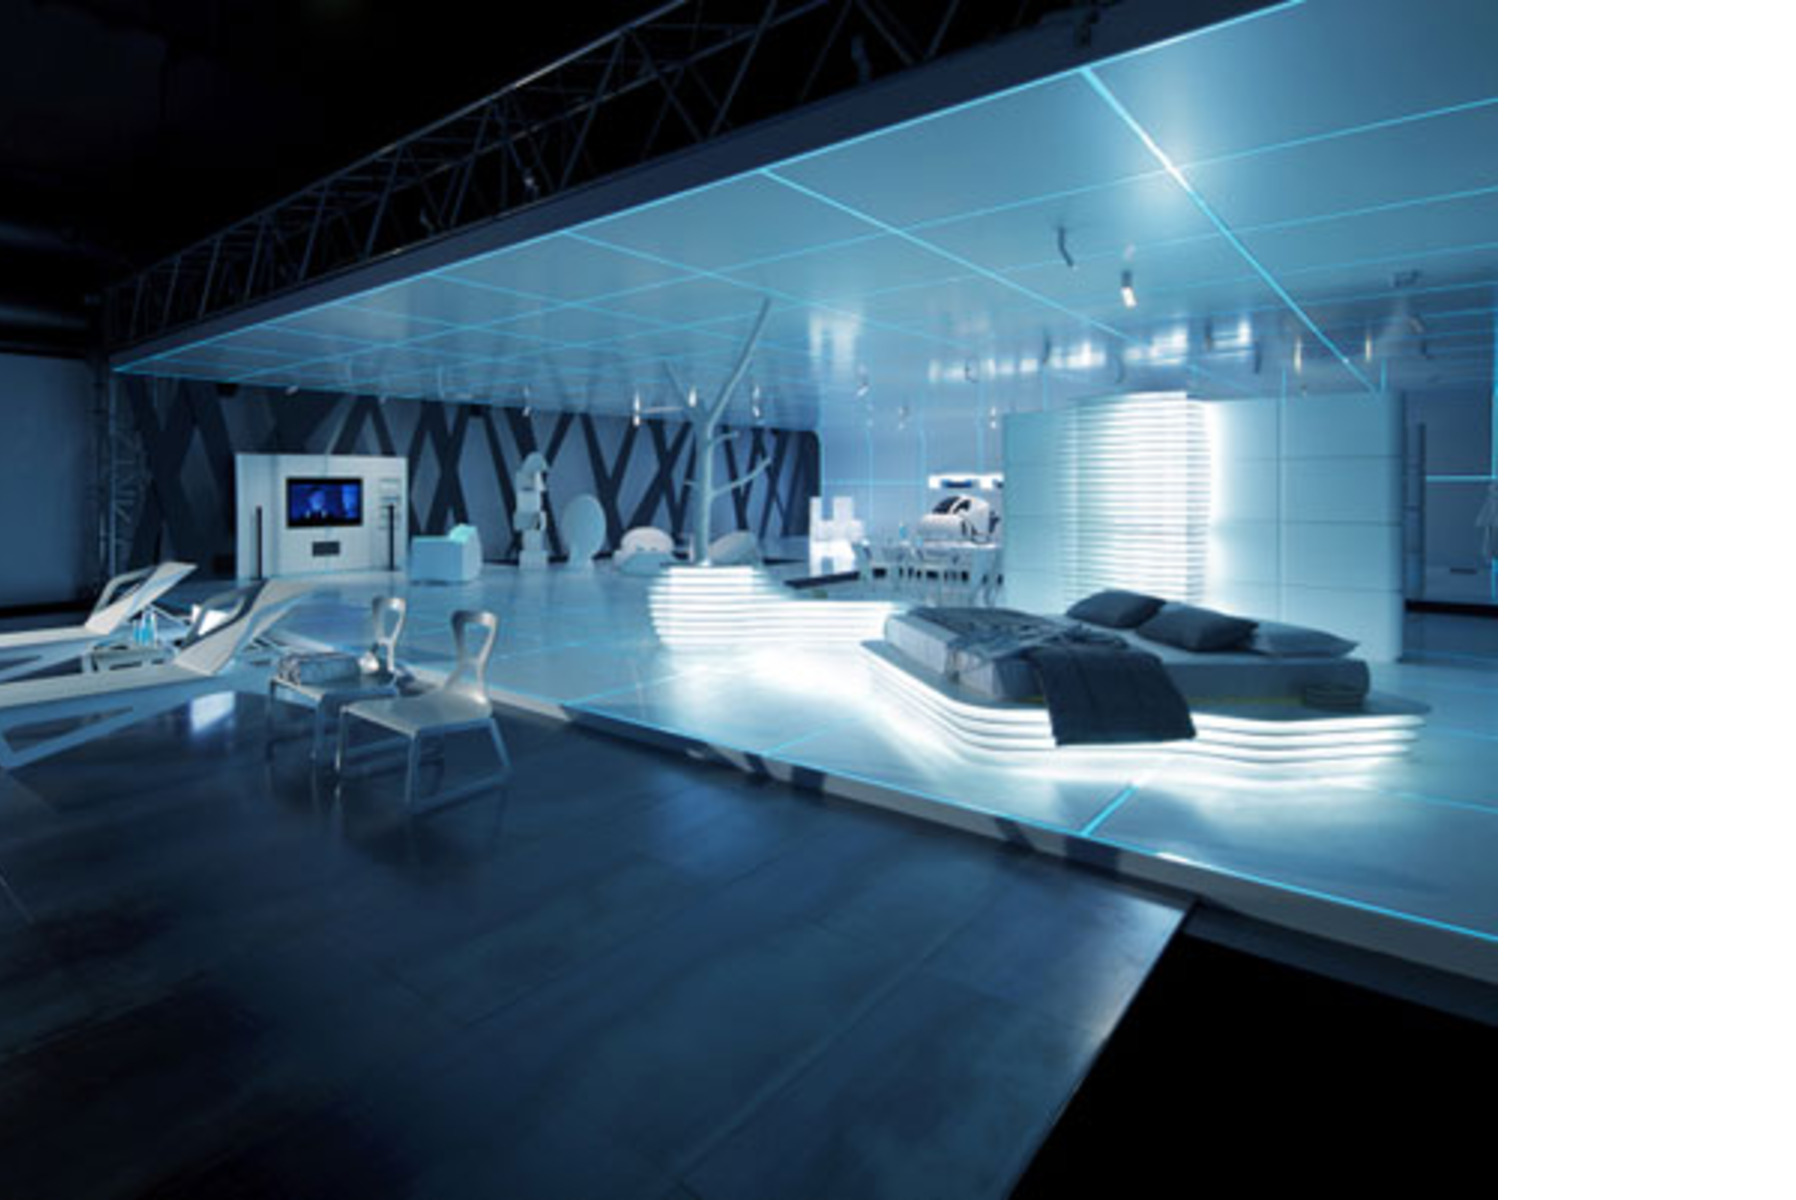 Exhibition Of Design Inspired By The Film Tron Legacy